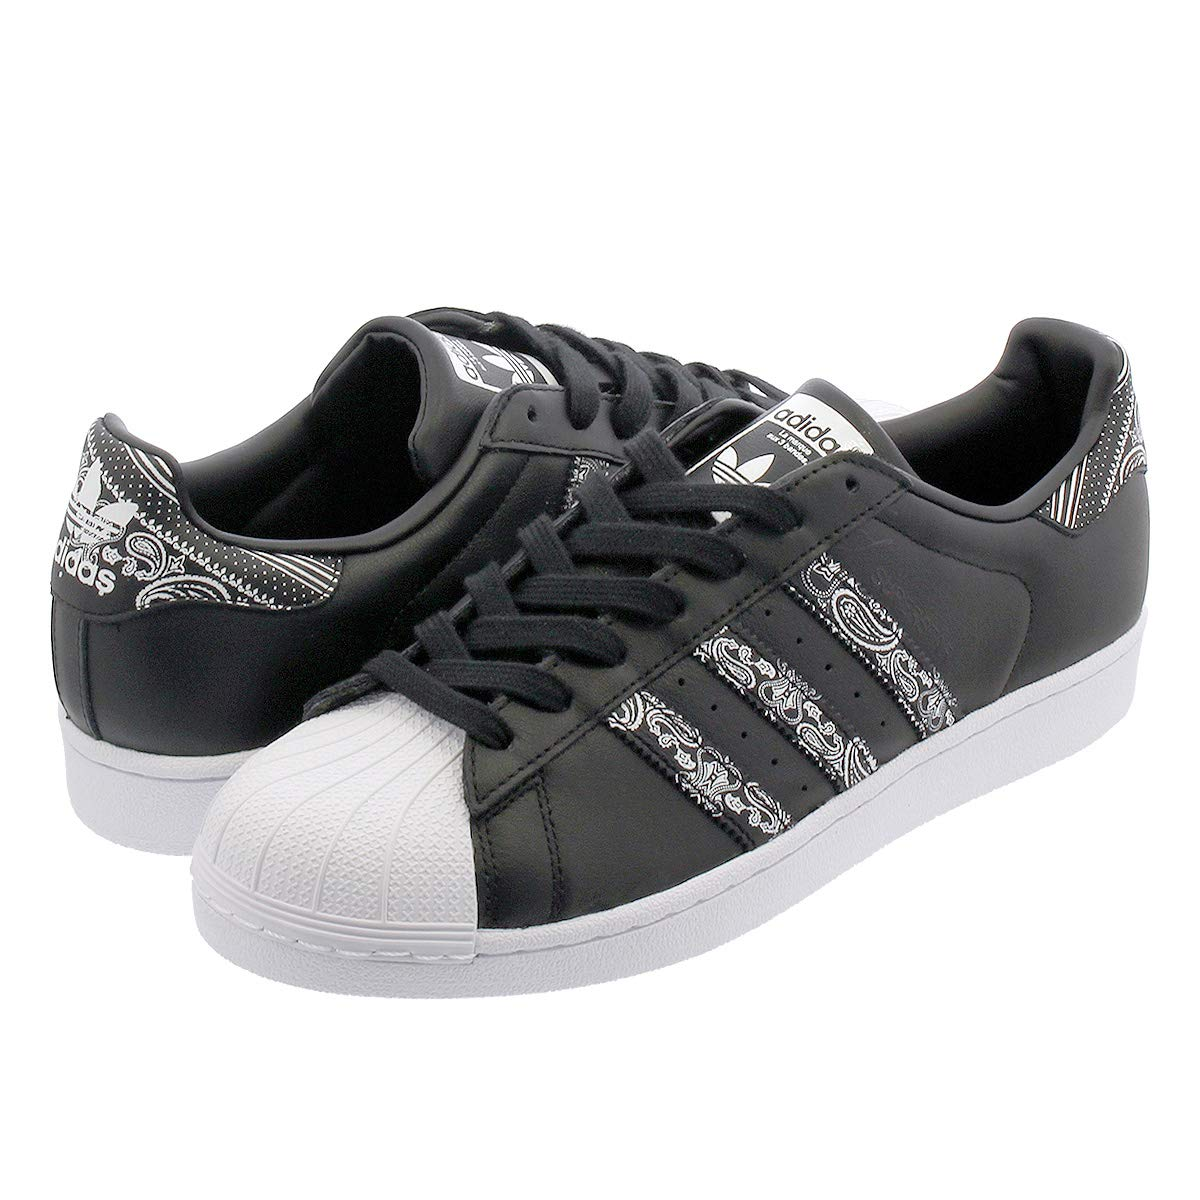 a88e6998648f7 adidas Men's Superstar II Fitness Shoes